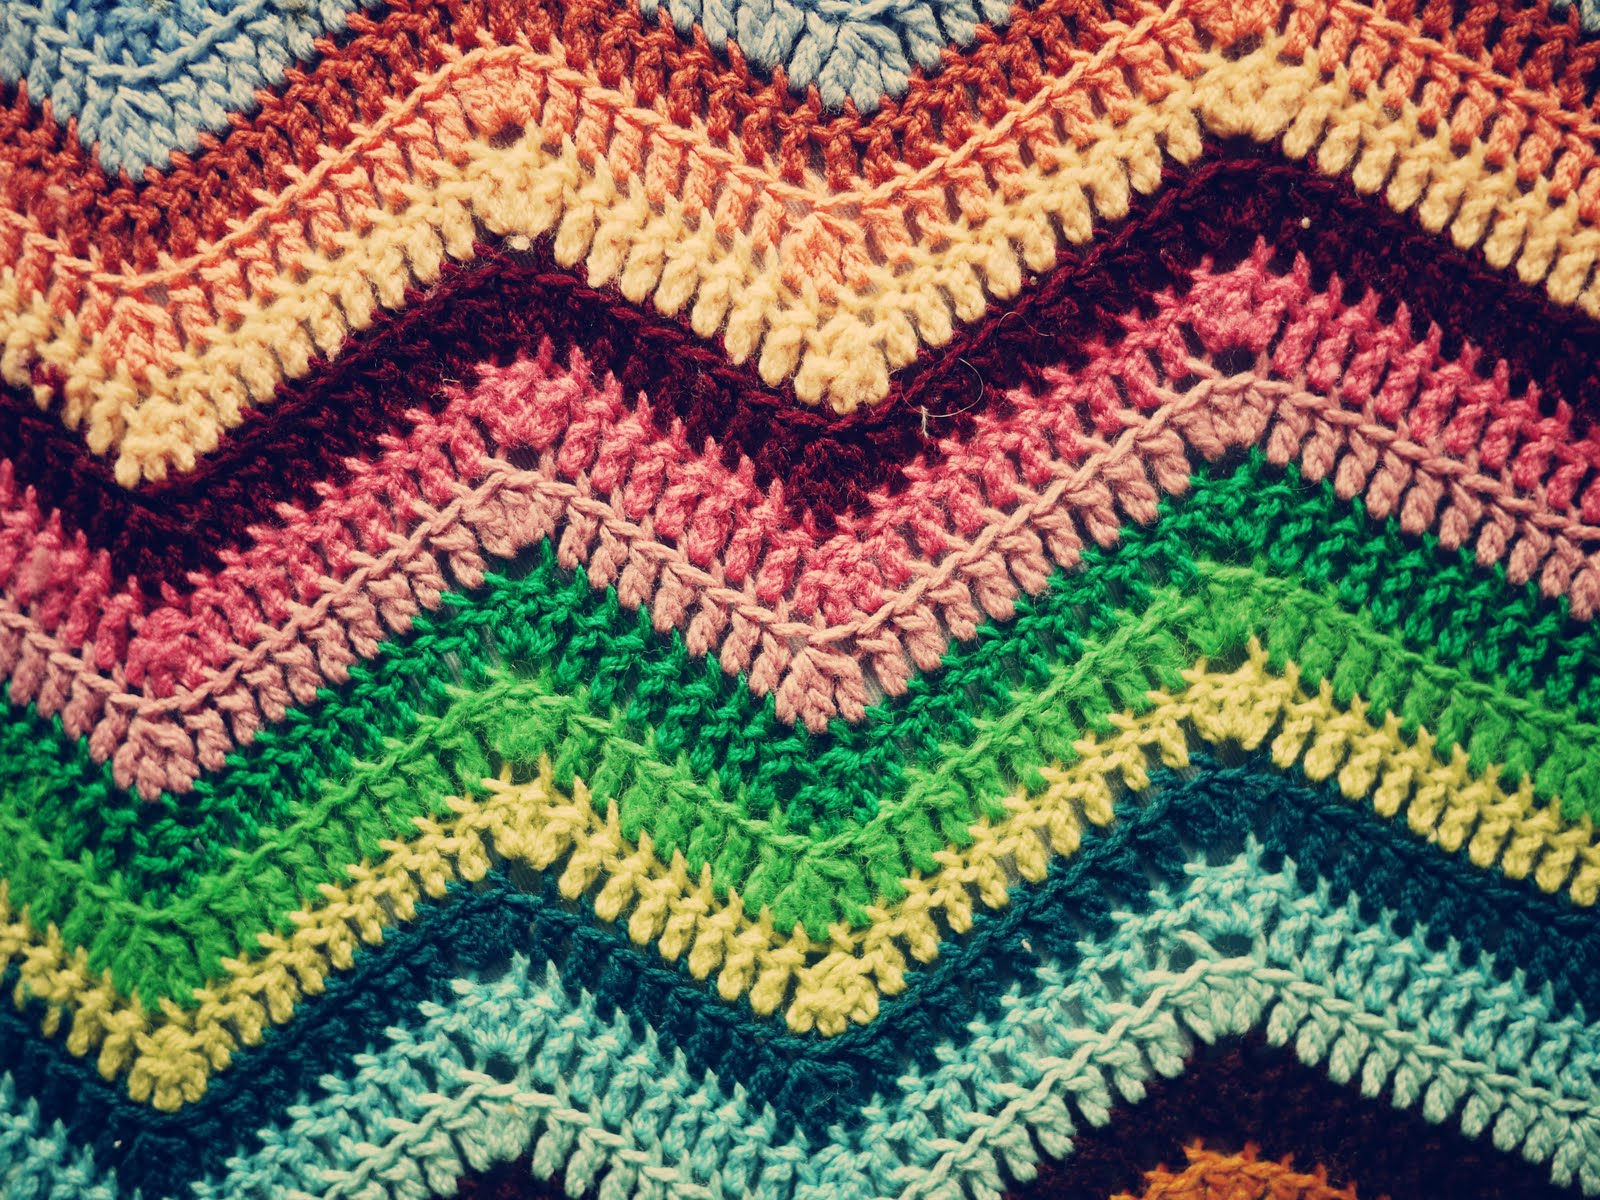 Crochet Wallpaper by Mara Junge PC.29-QRX